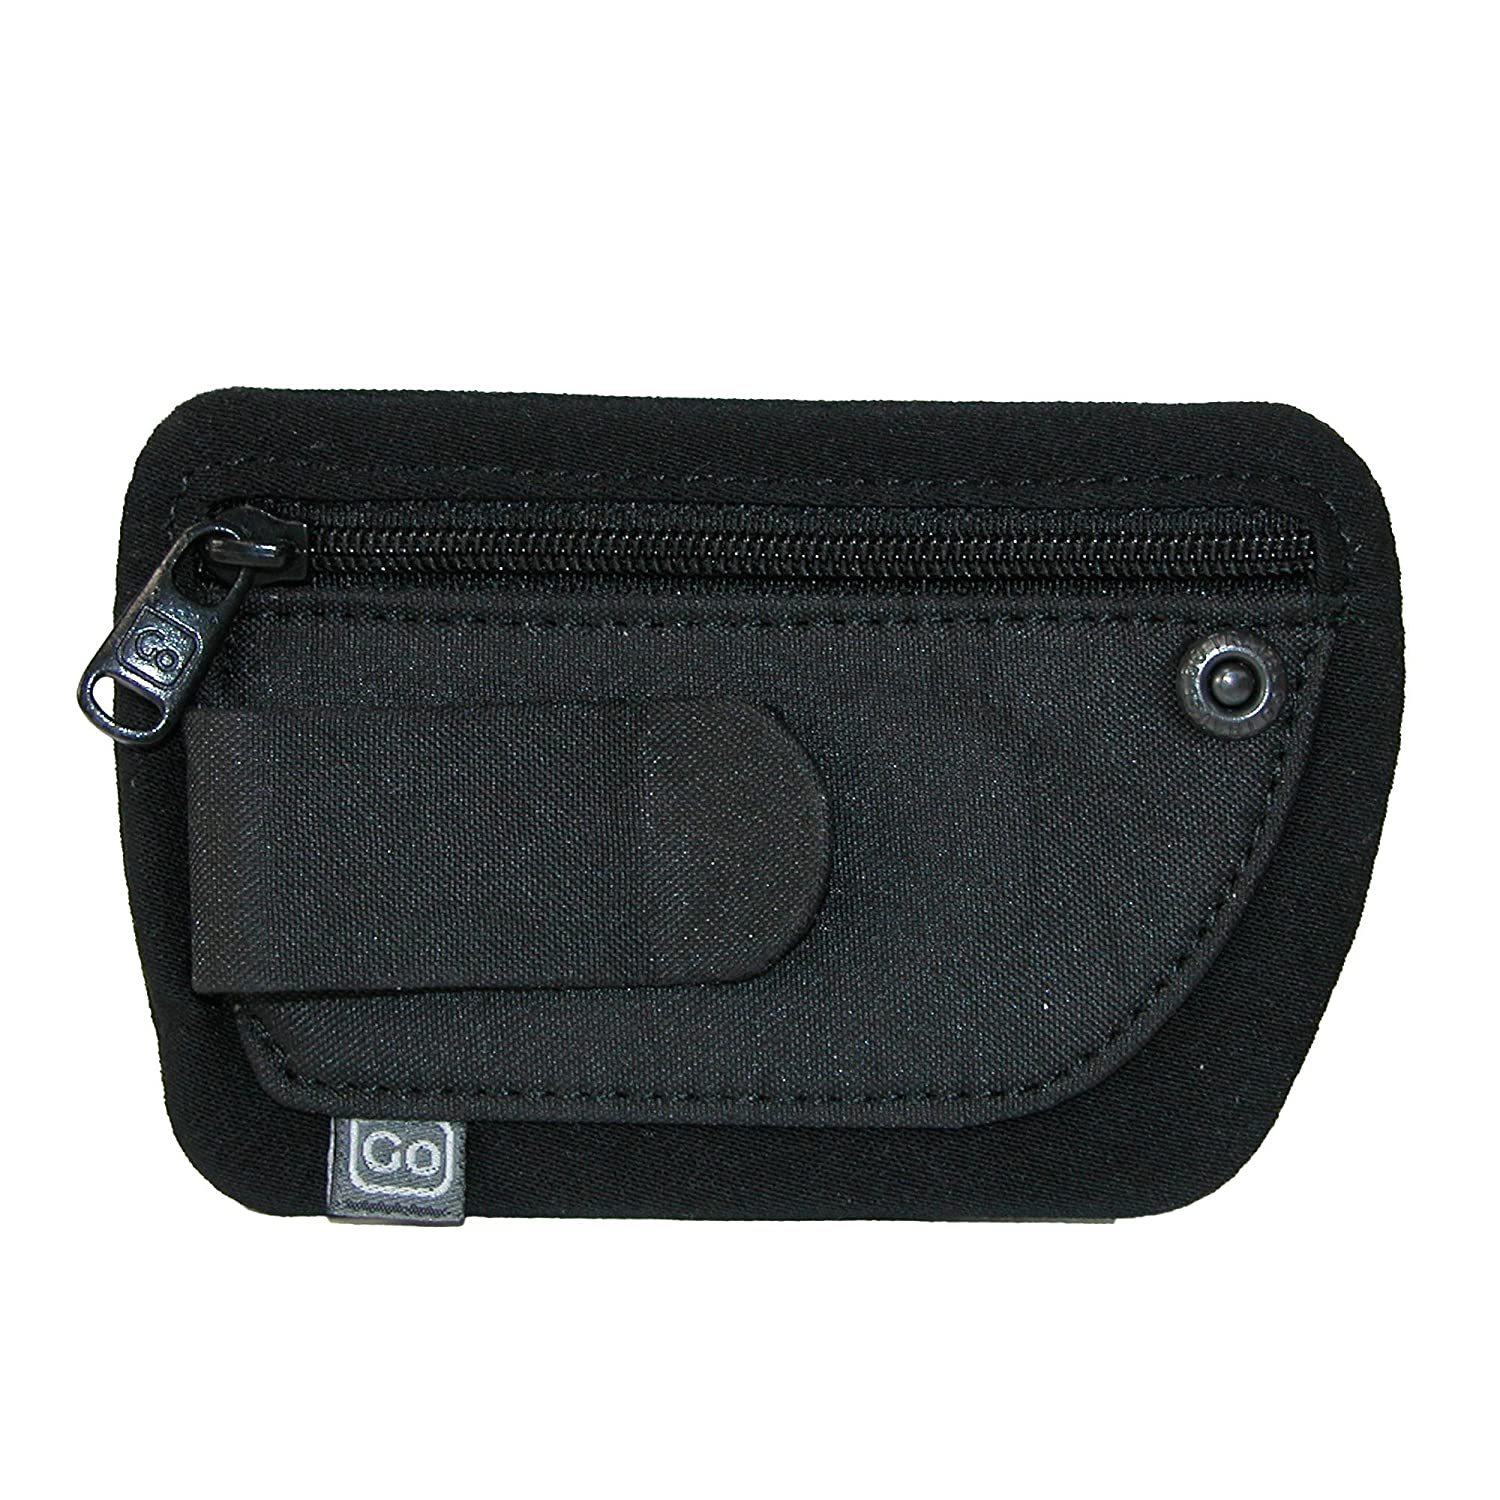 Go Travel Luggage Clip Pouch, Black, One Size 887